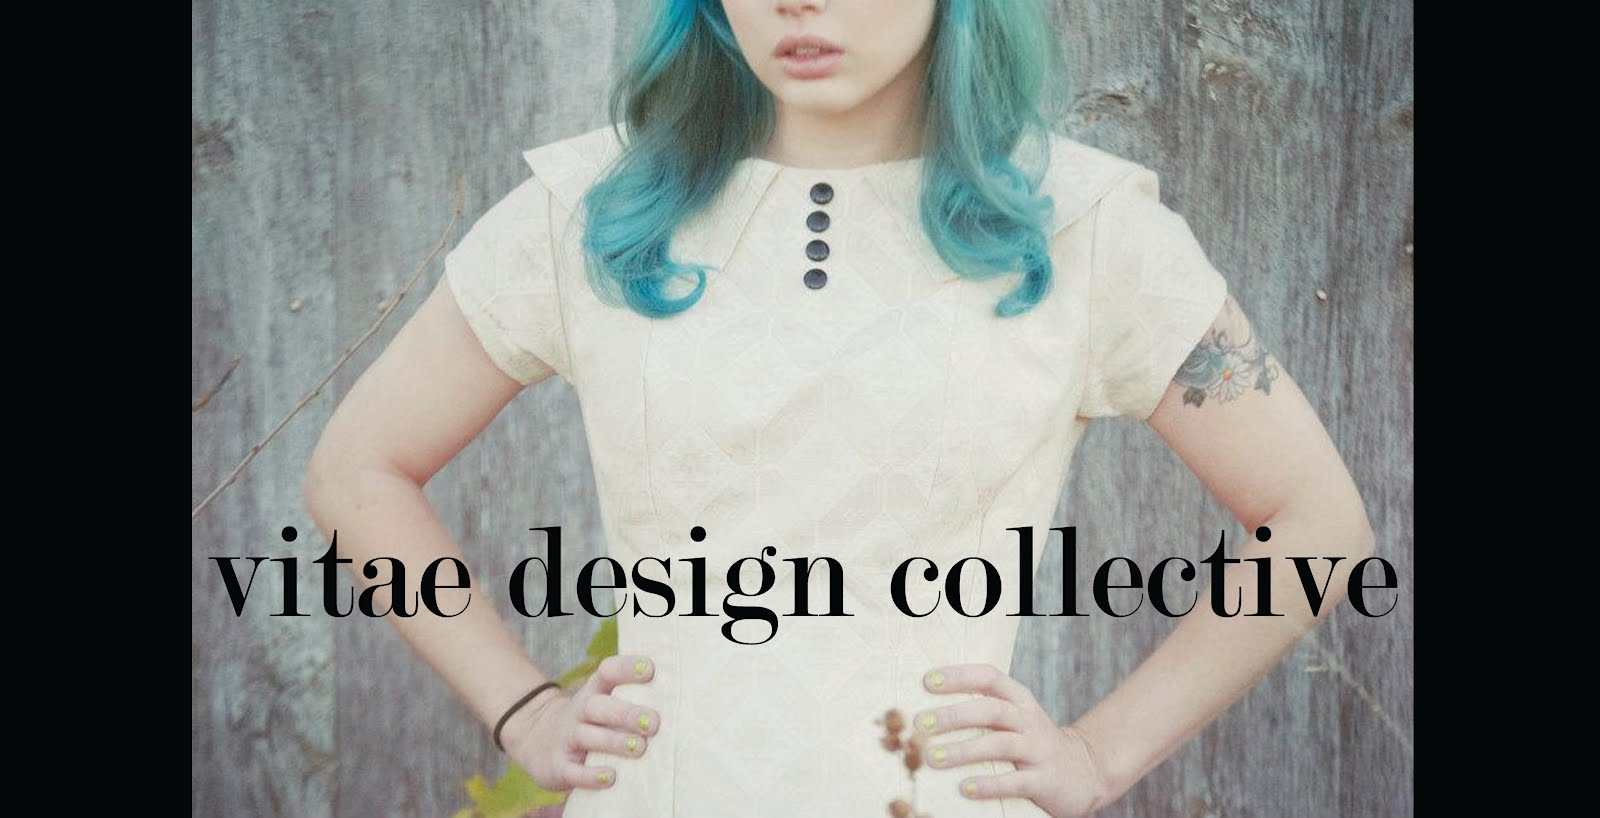 Vitae Design Collective